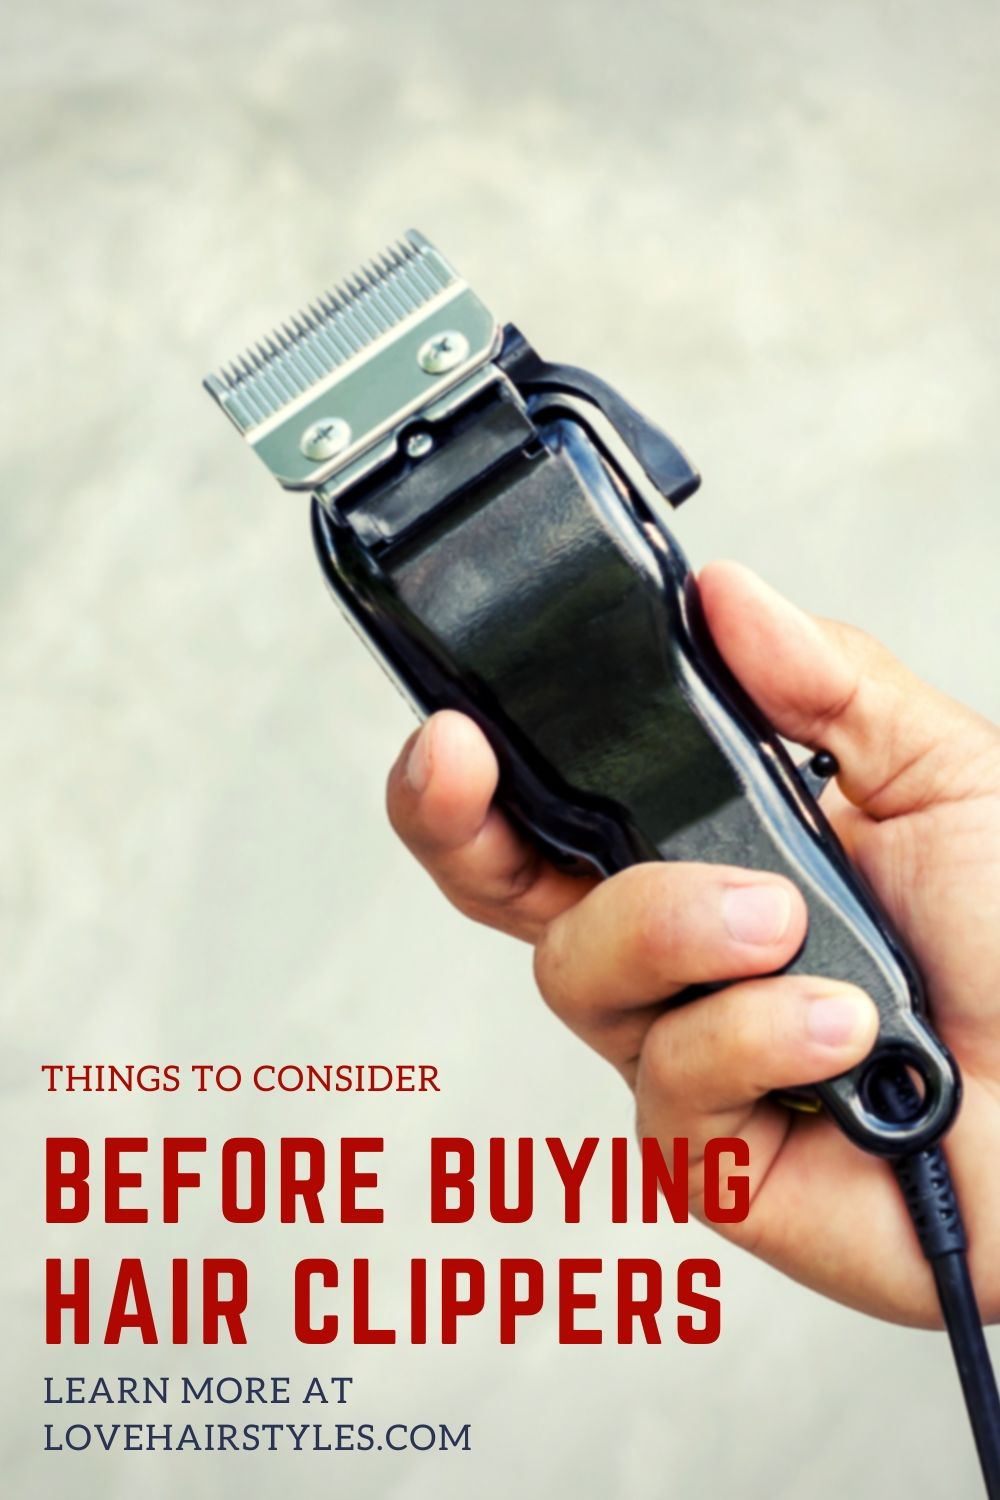 Things to Consider When Buying Hair Clippers